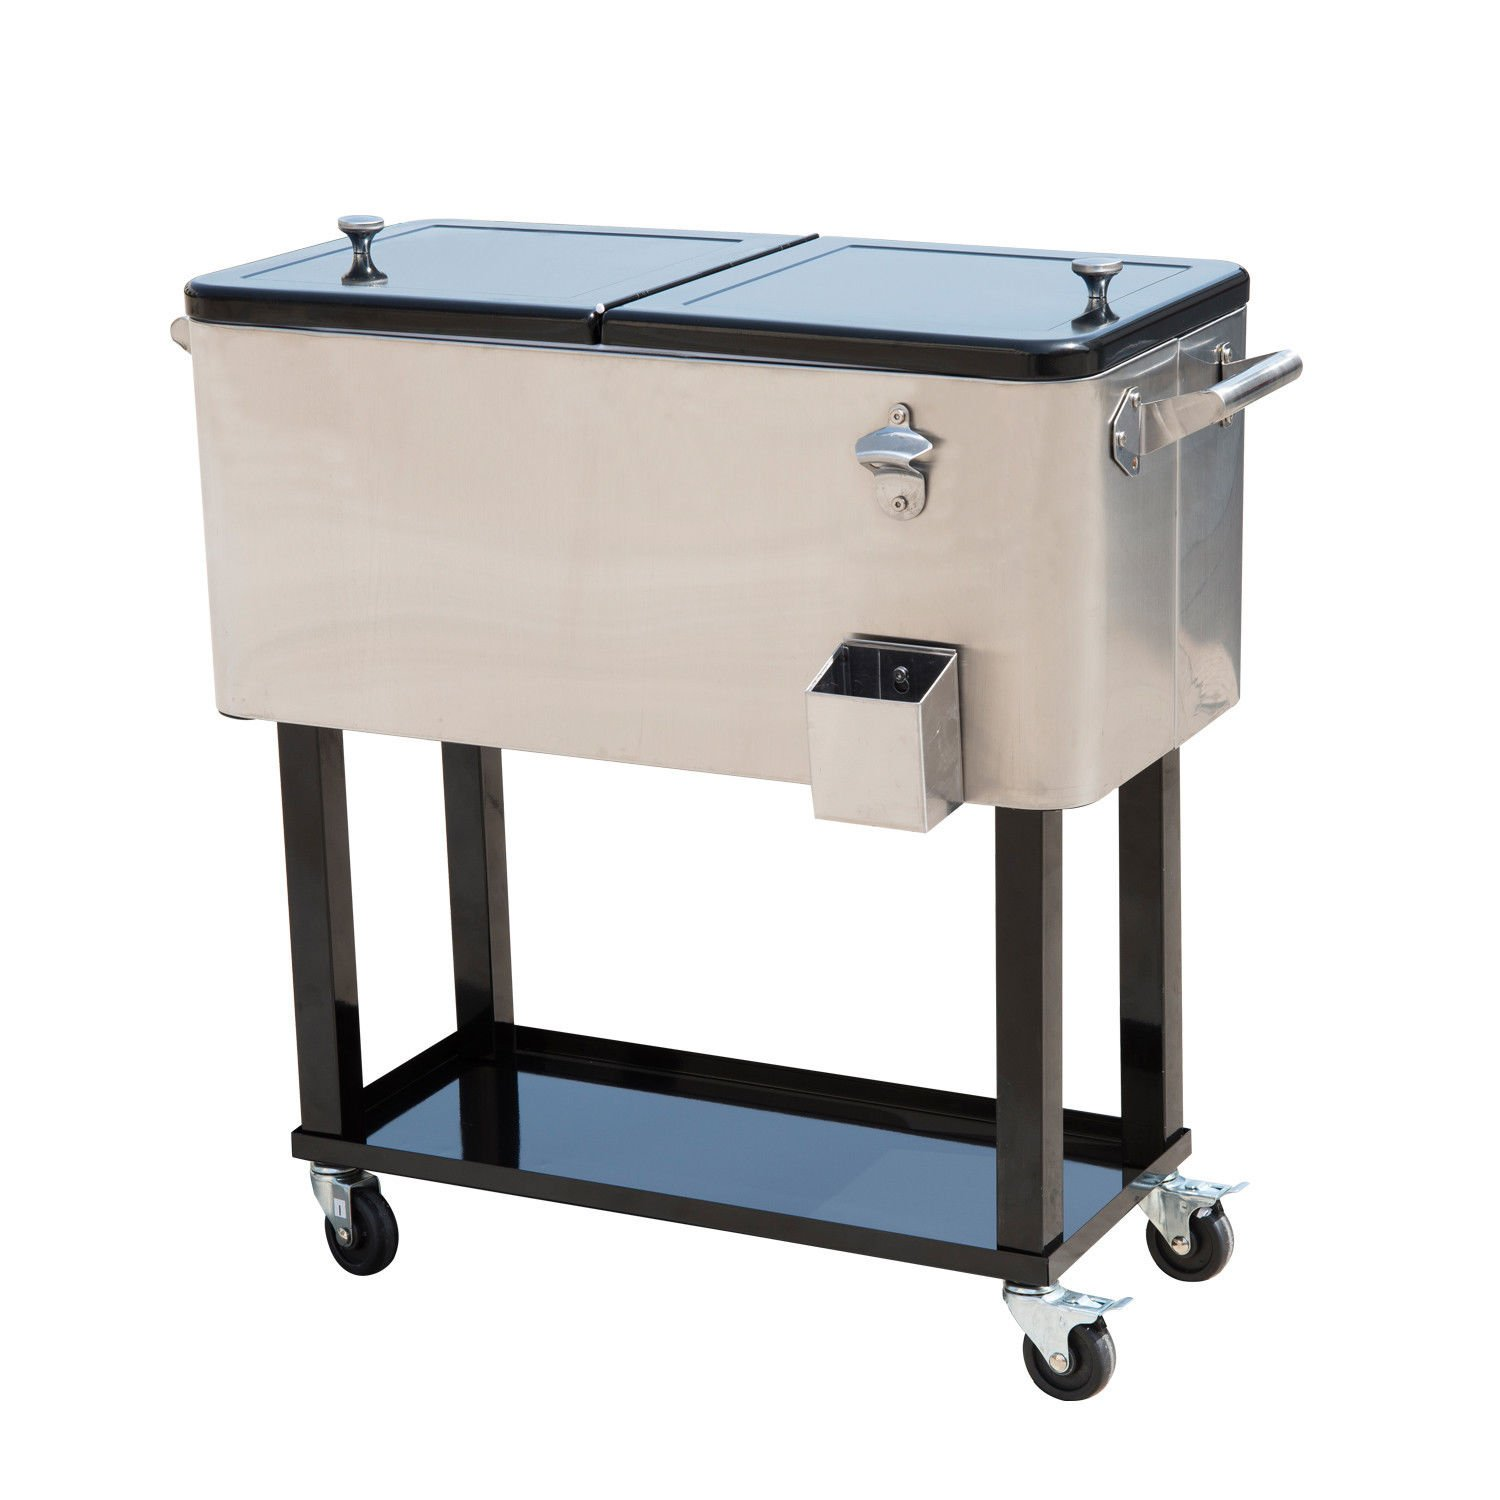 Outsunny 80 QT Rolling Ice Chest Portable Patio Party Drink Cooler Cart - Stainless Steel by Outsunny